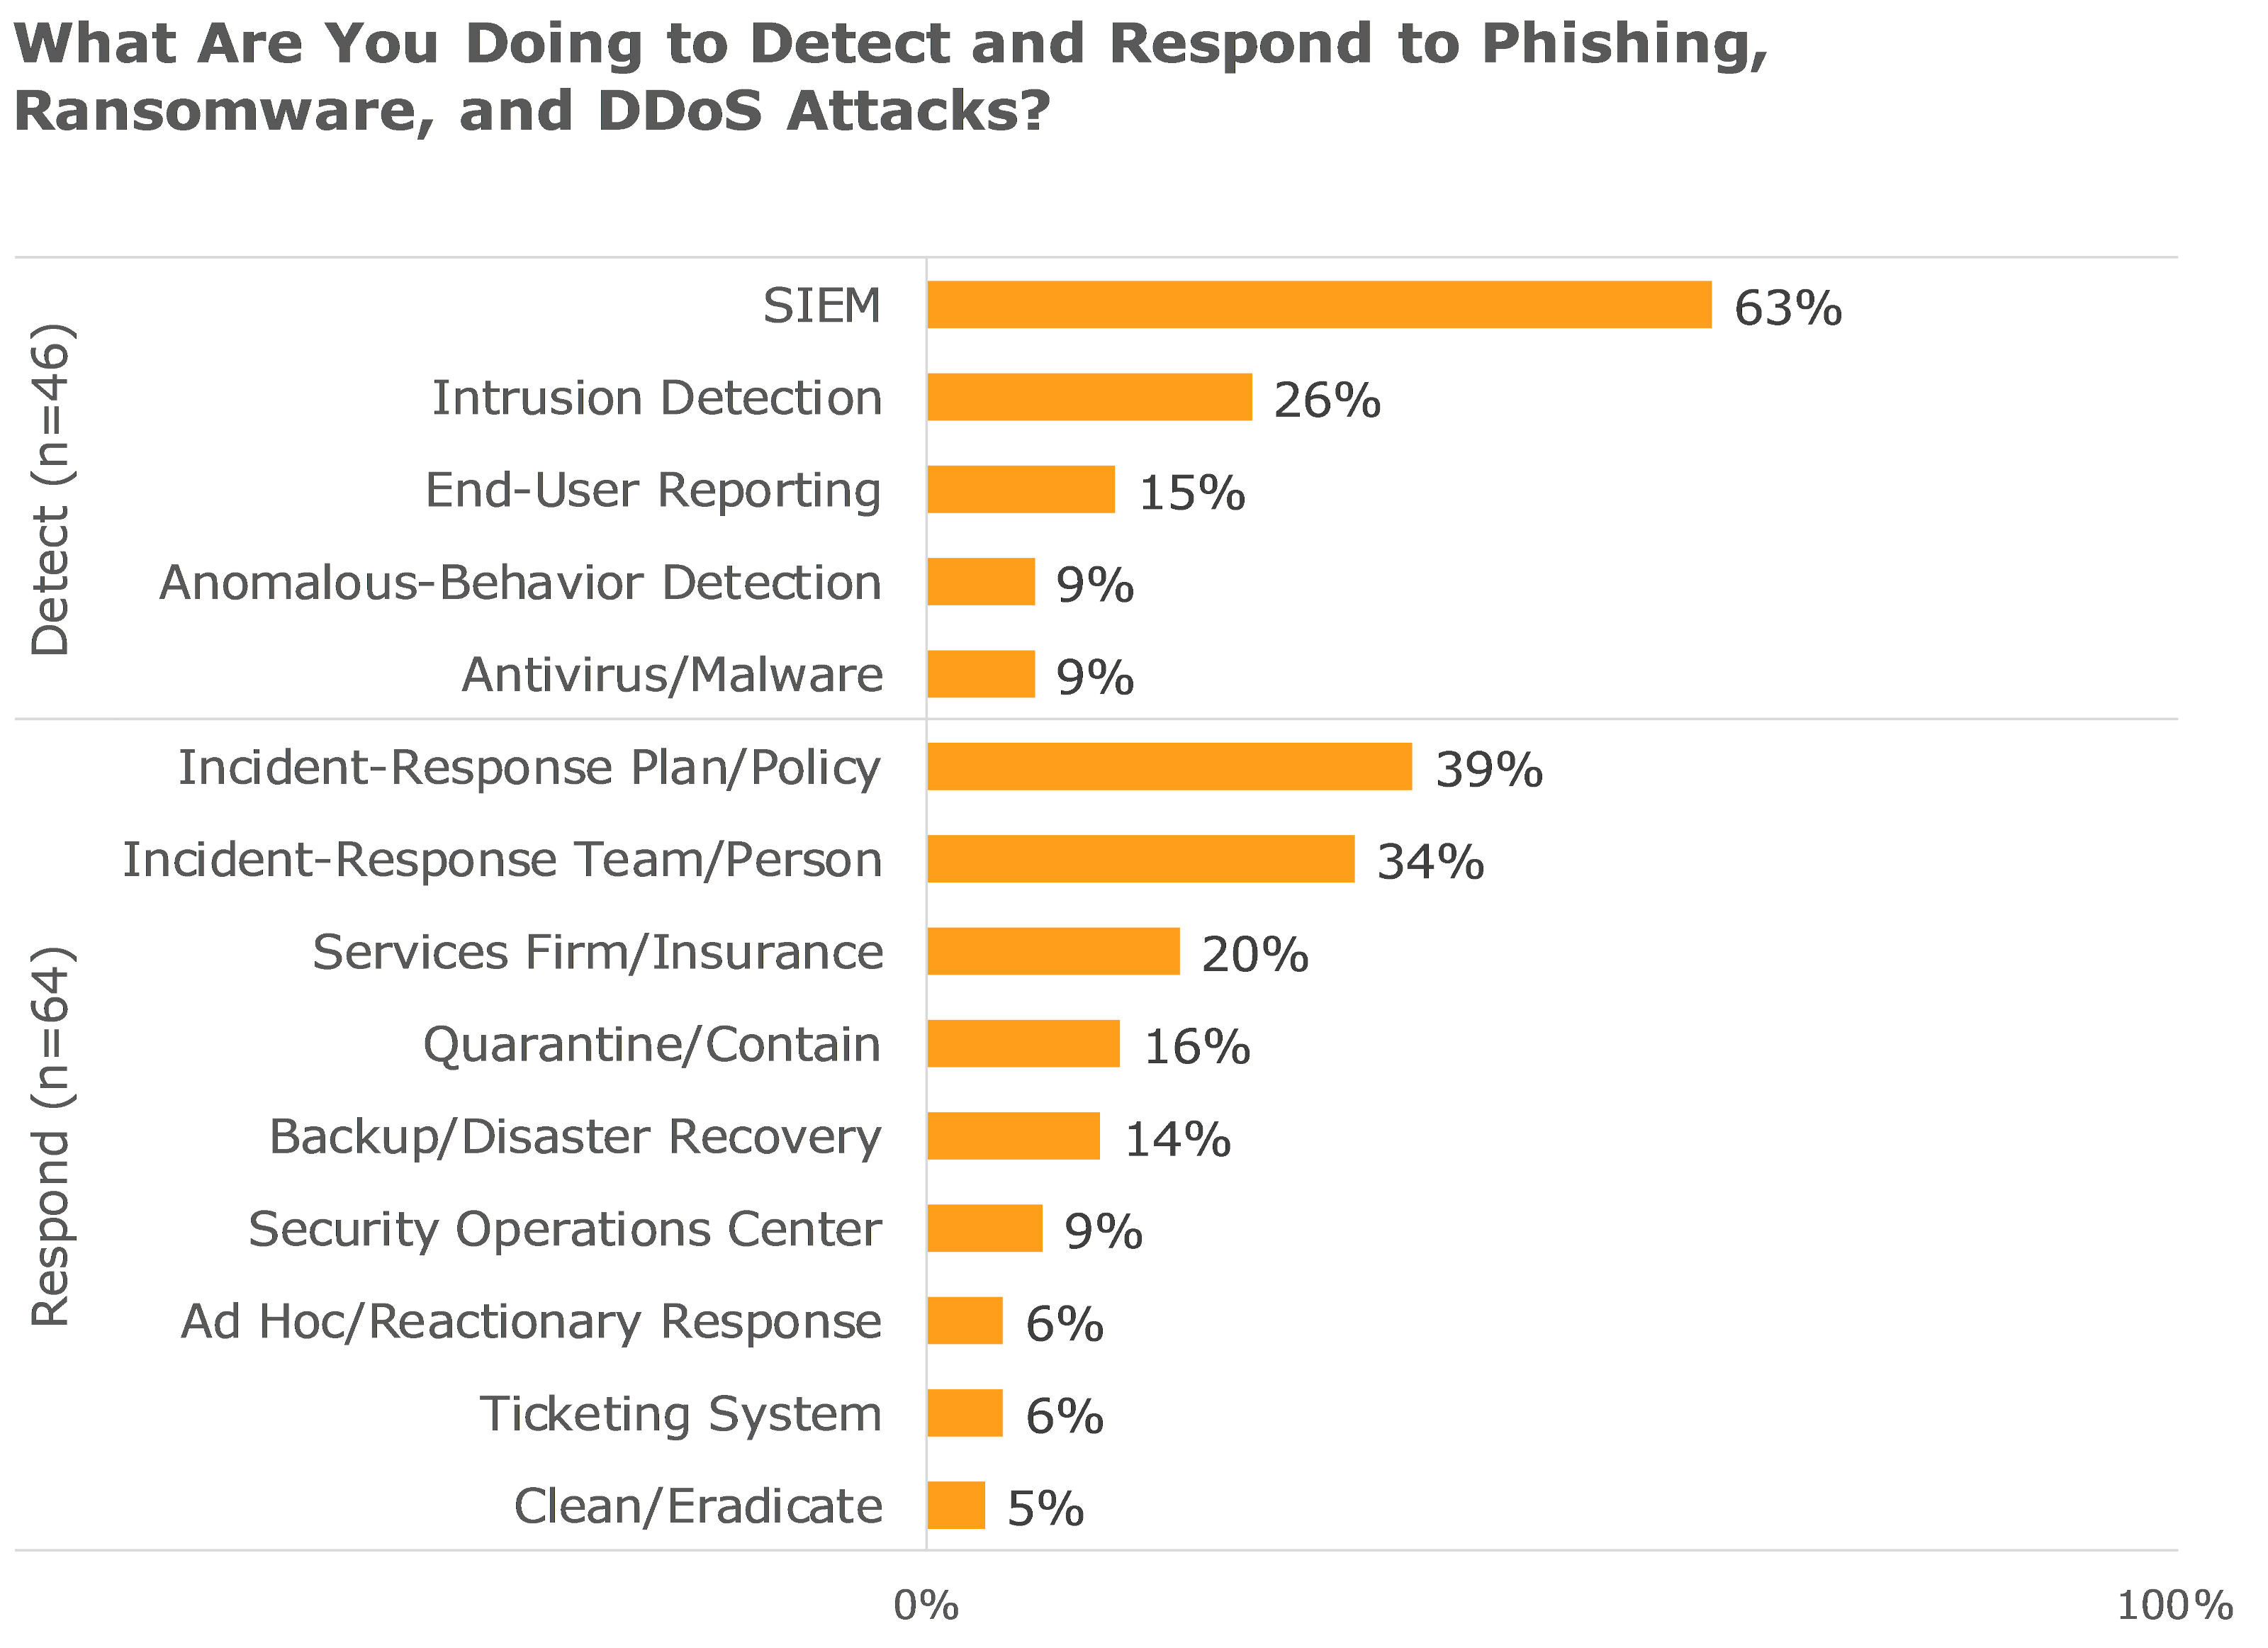 what are you doing to detect and respond to phishing ransomware and ddos attacks